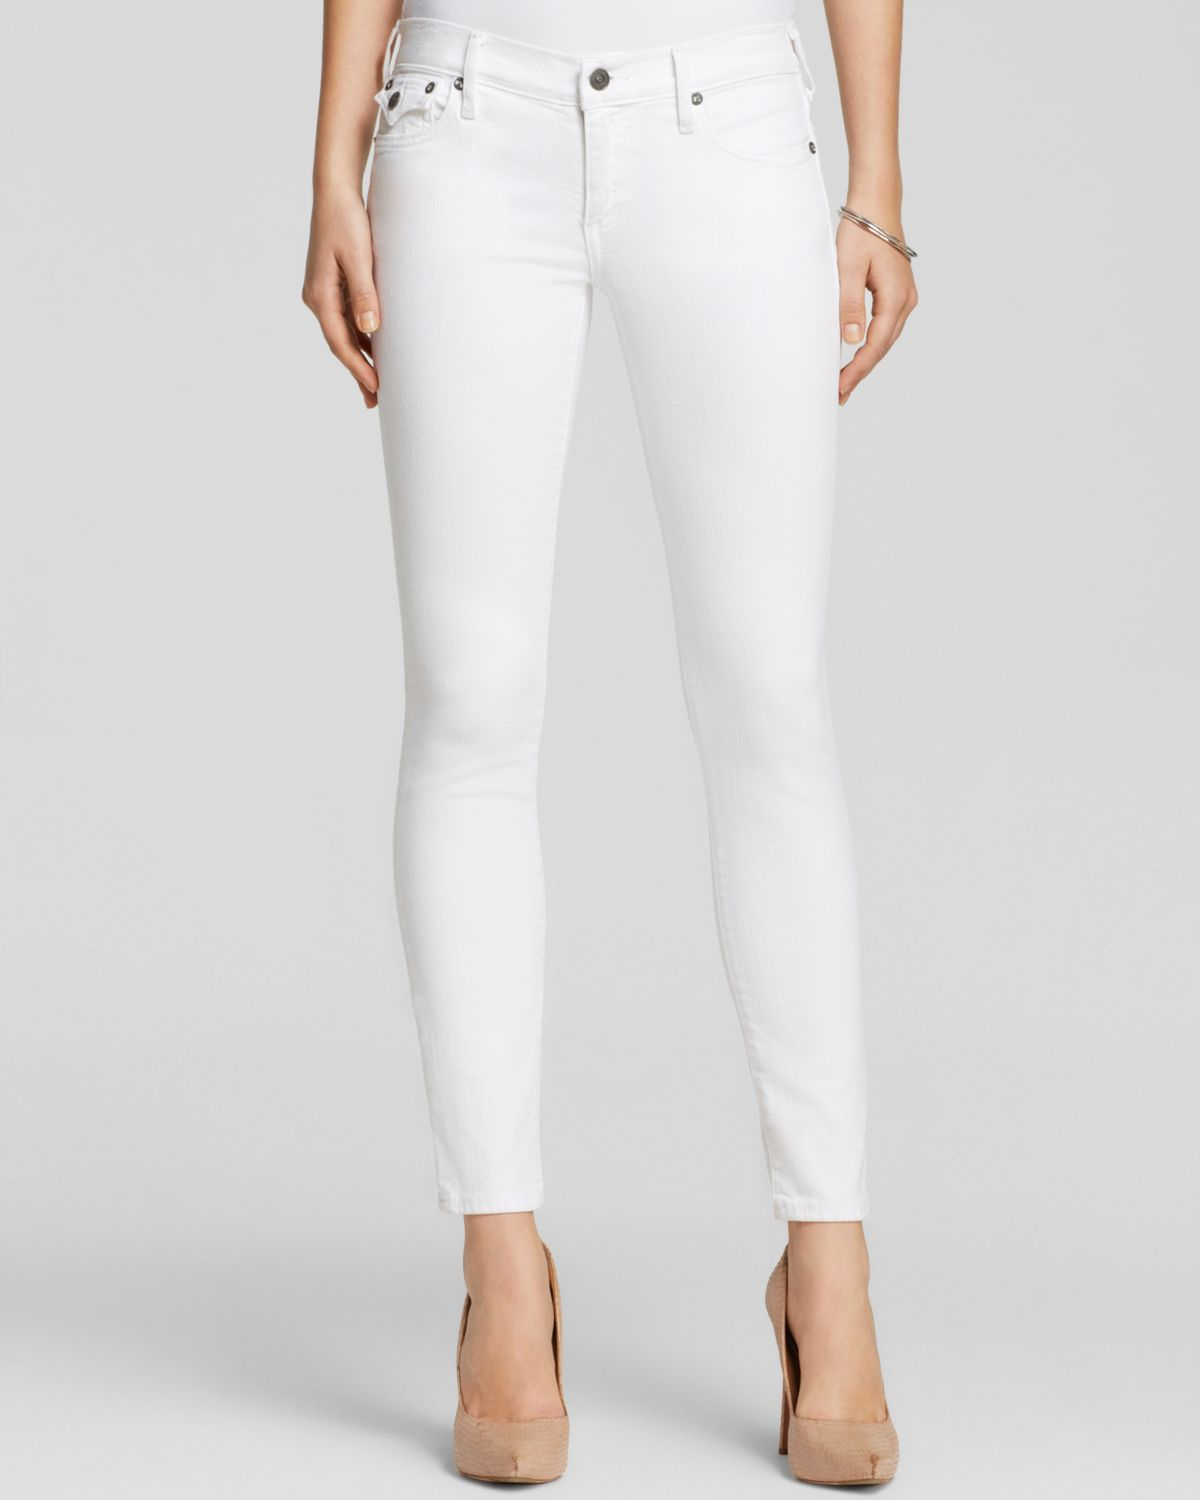 True religion Jeans - Casey Low Rise Super Skinny In Optic White ...